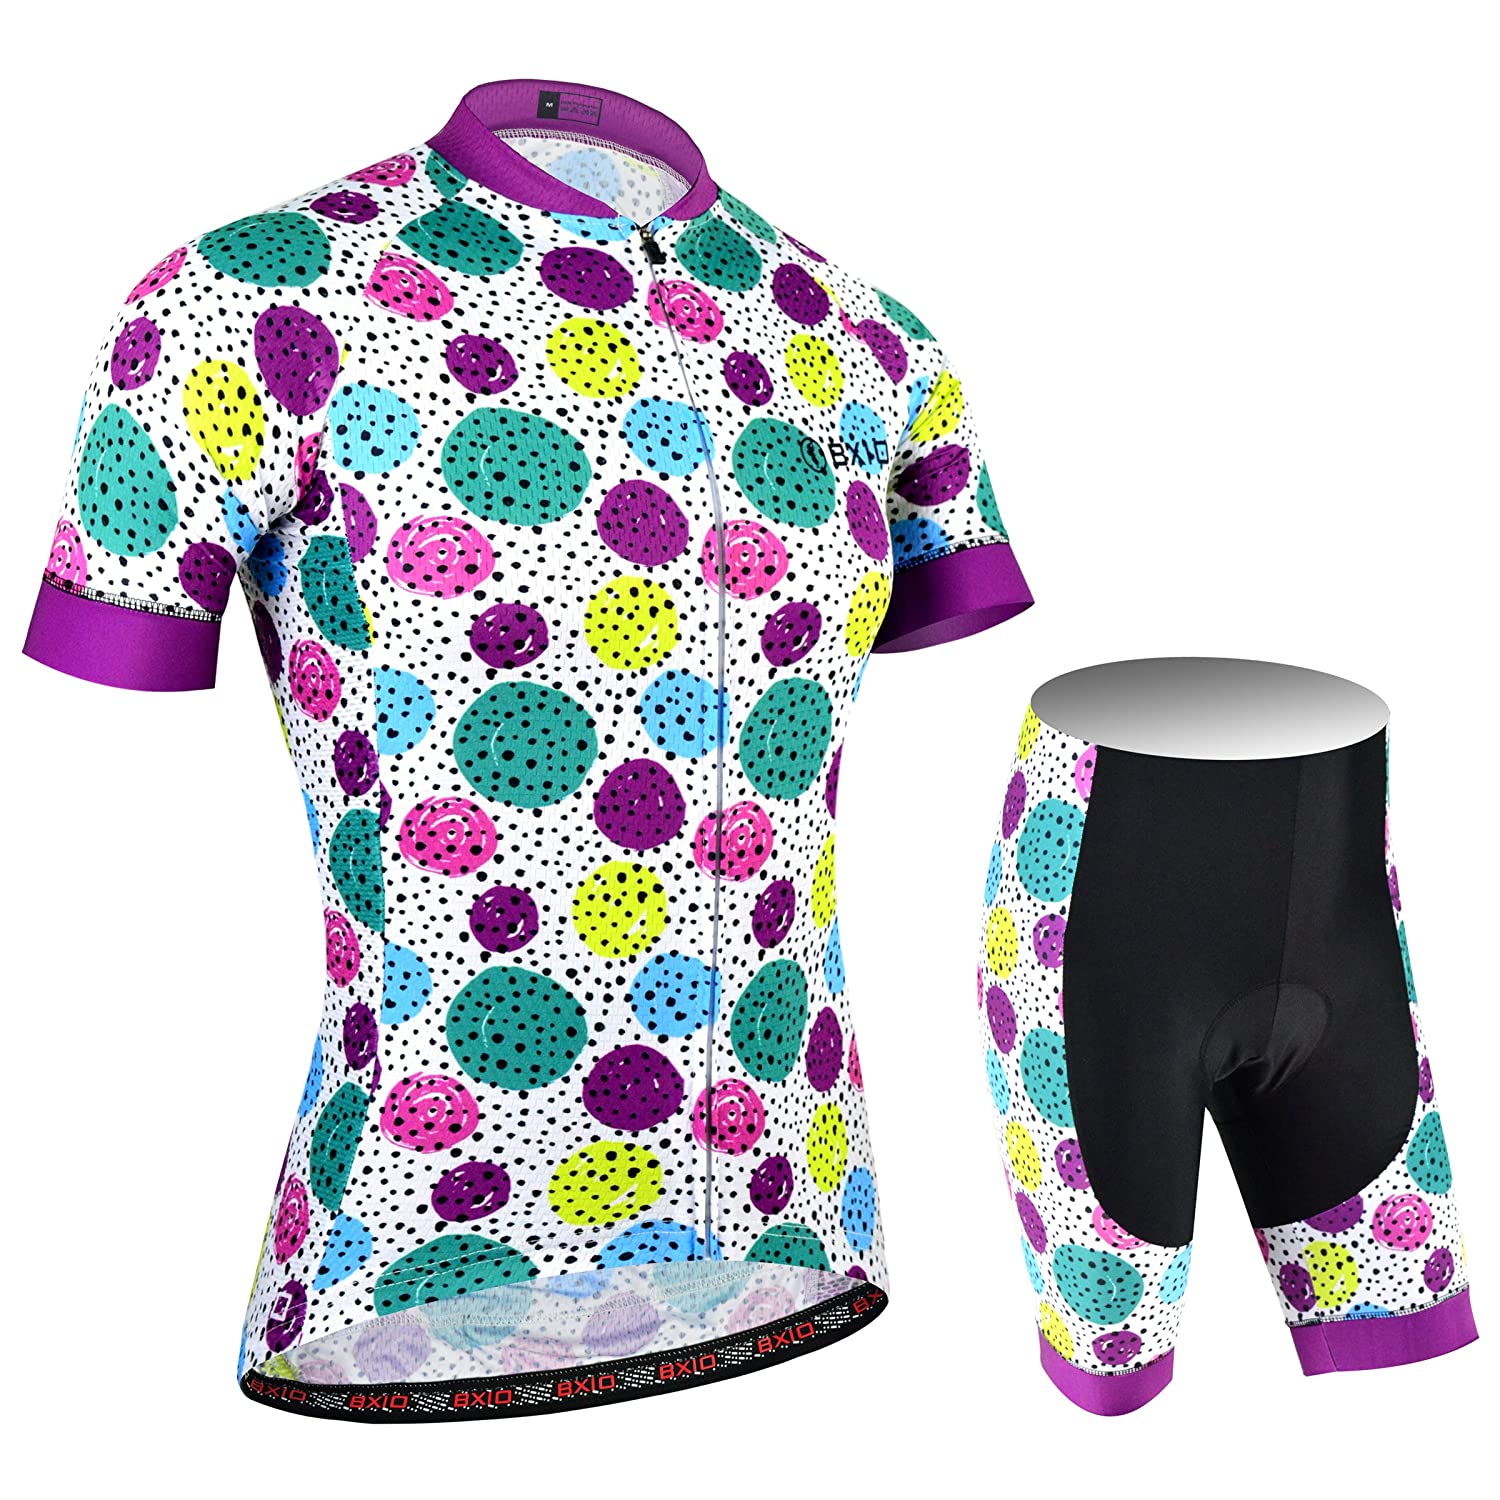 Shirt and Shorts BXIO Women Cycling Suit MTB Cycling Jerseys Pro Team Bicycle Jerseys Promotion Bike Wear Girls Cycling Clothing BX176